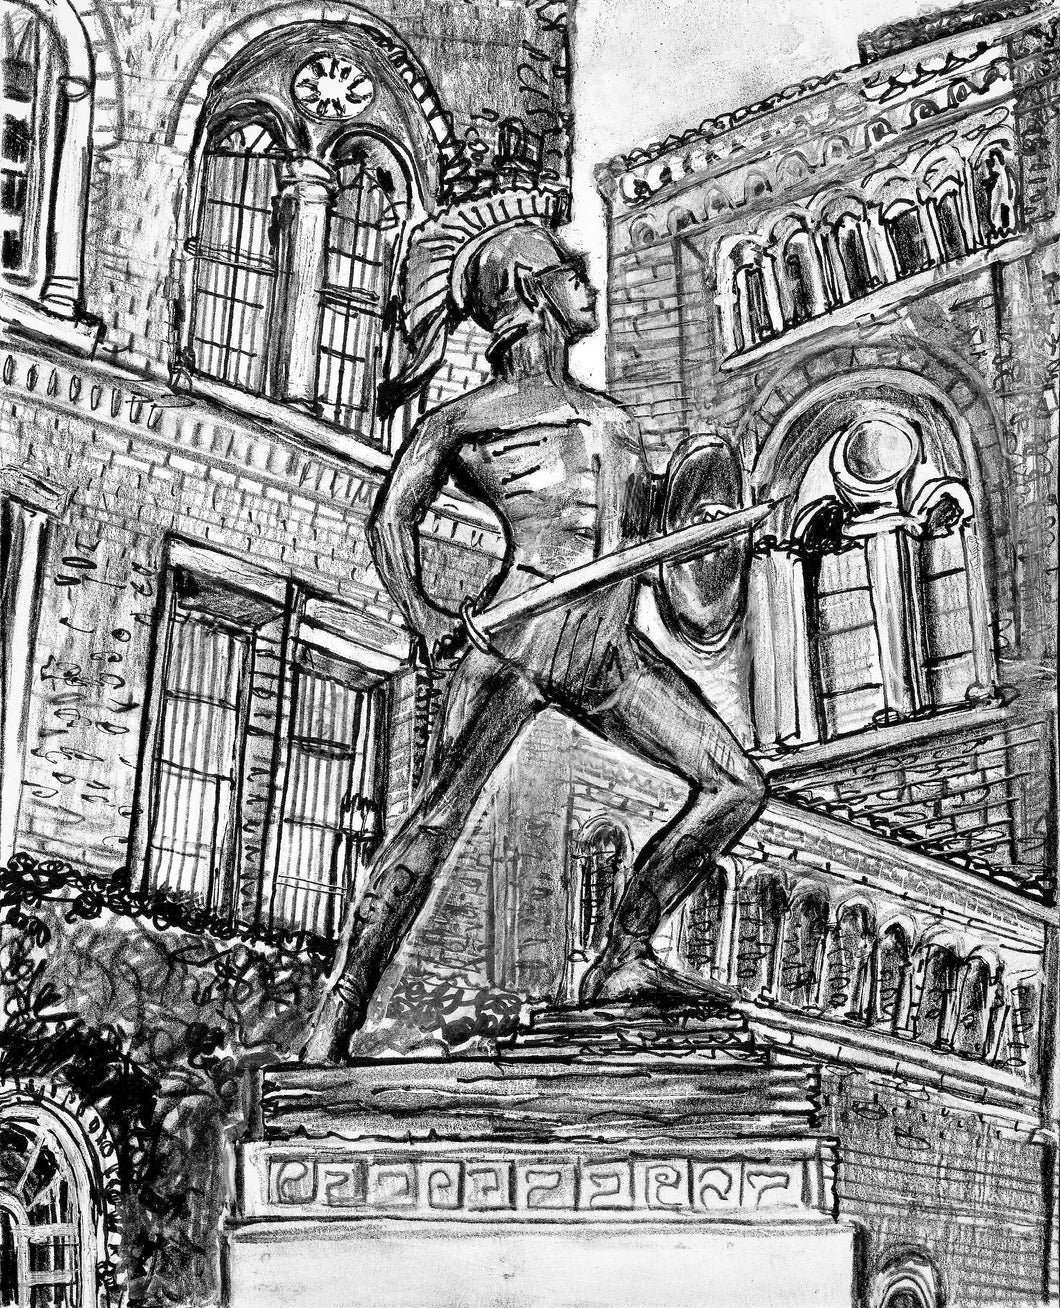 Tommy Trojan, University of Southern California